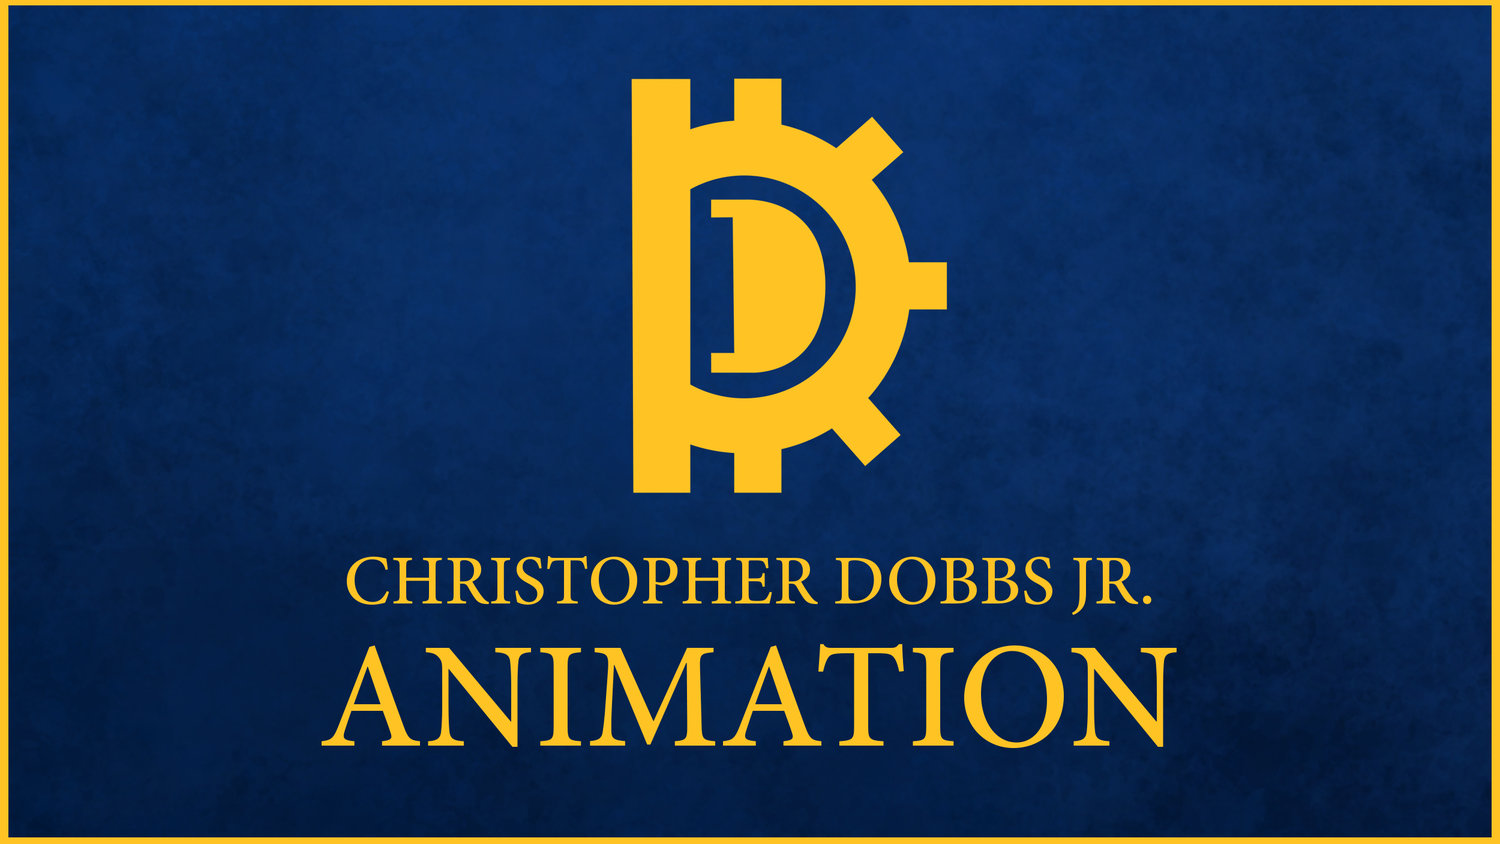 Christopher Dobbs Jr. Animation